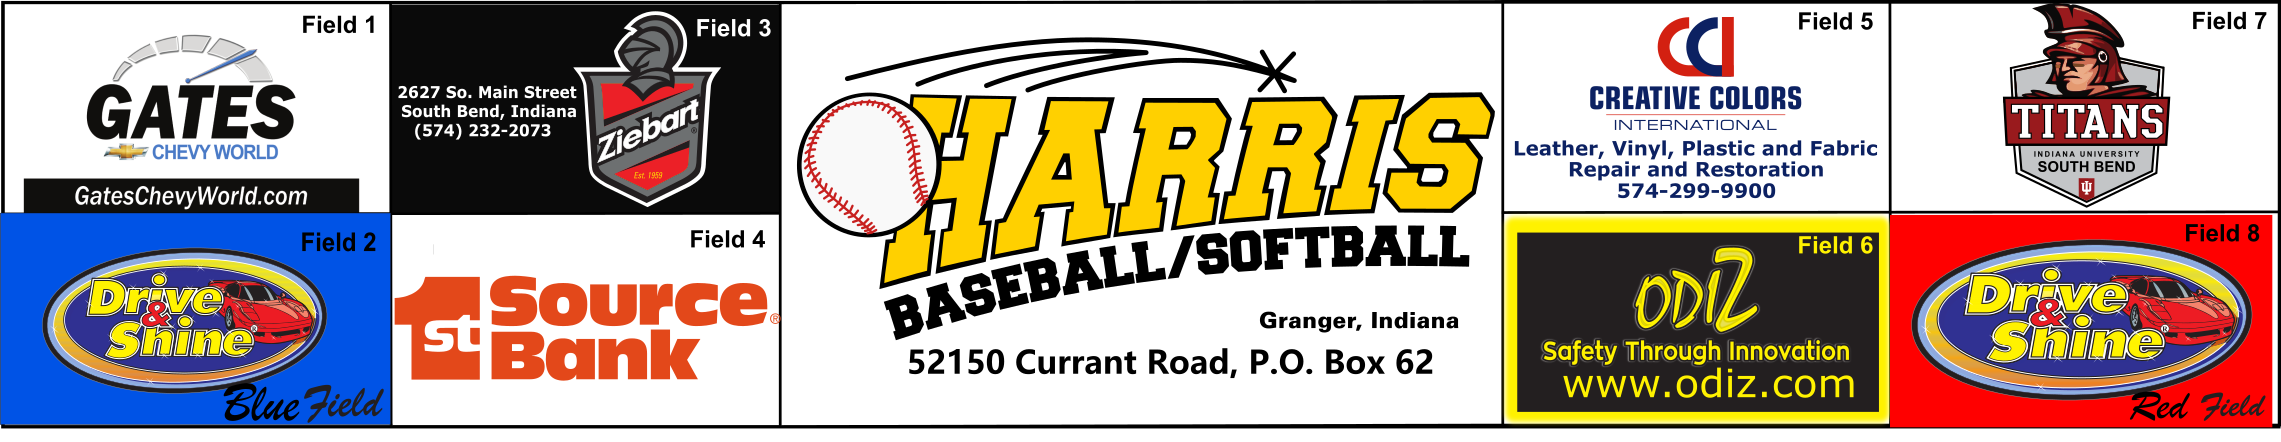 Harris Baseball Softball, Inc., Baseball, Run, Field